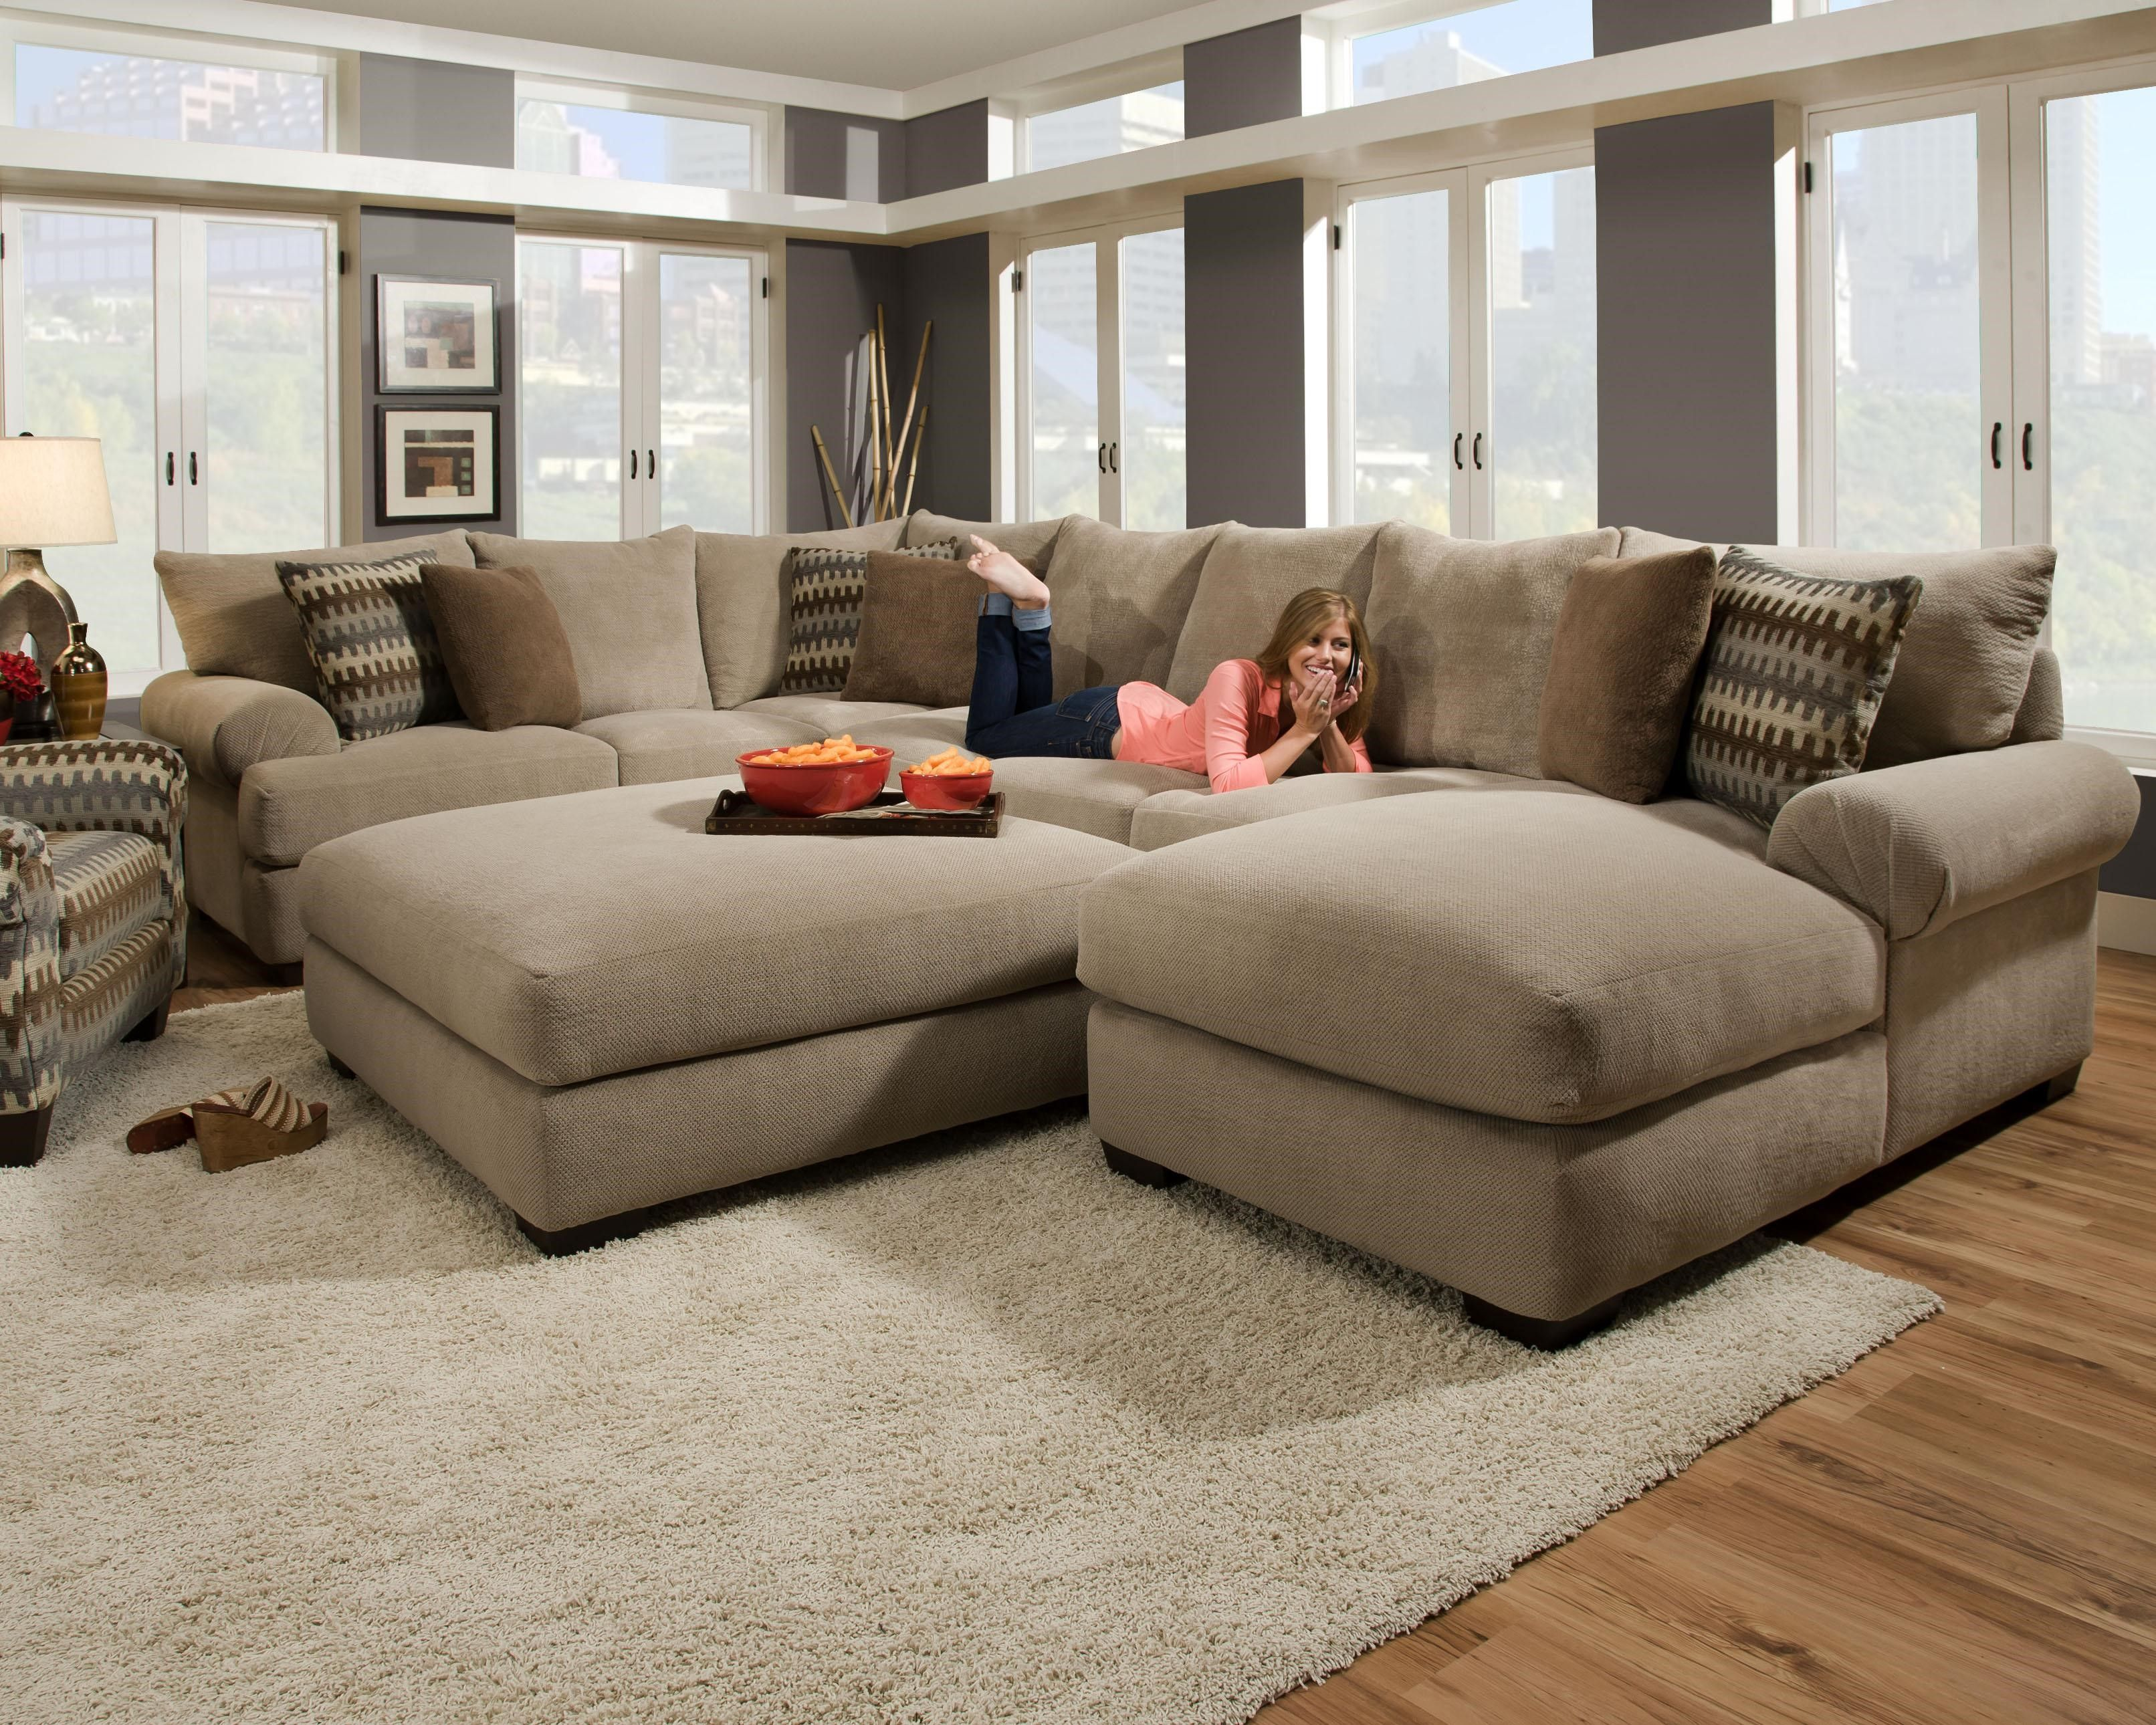 best  sectional sofas cheap ideas on pinterest  cheap sectional couchesgo lounge and do it yourself small garden ideas. best  sectional sofas cheap ideas on pinterest  cheap